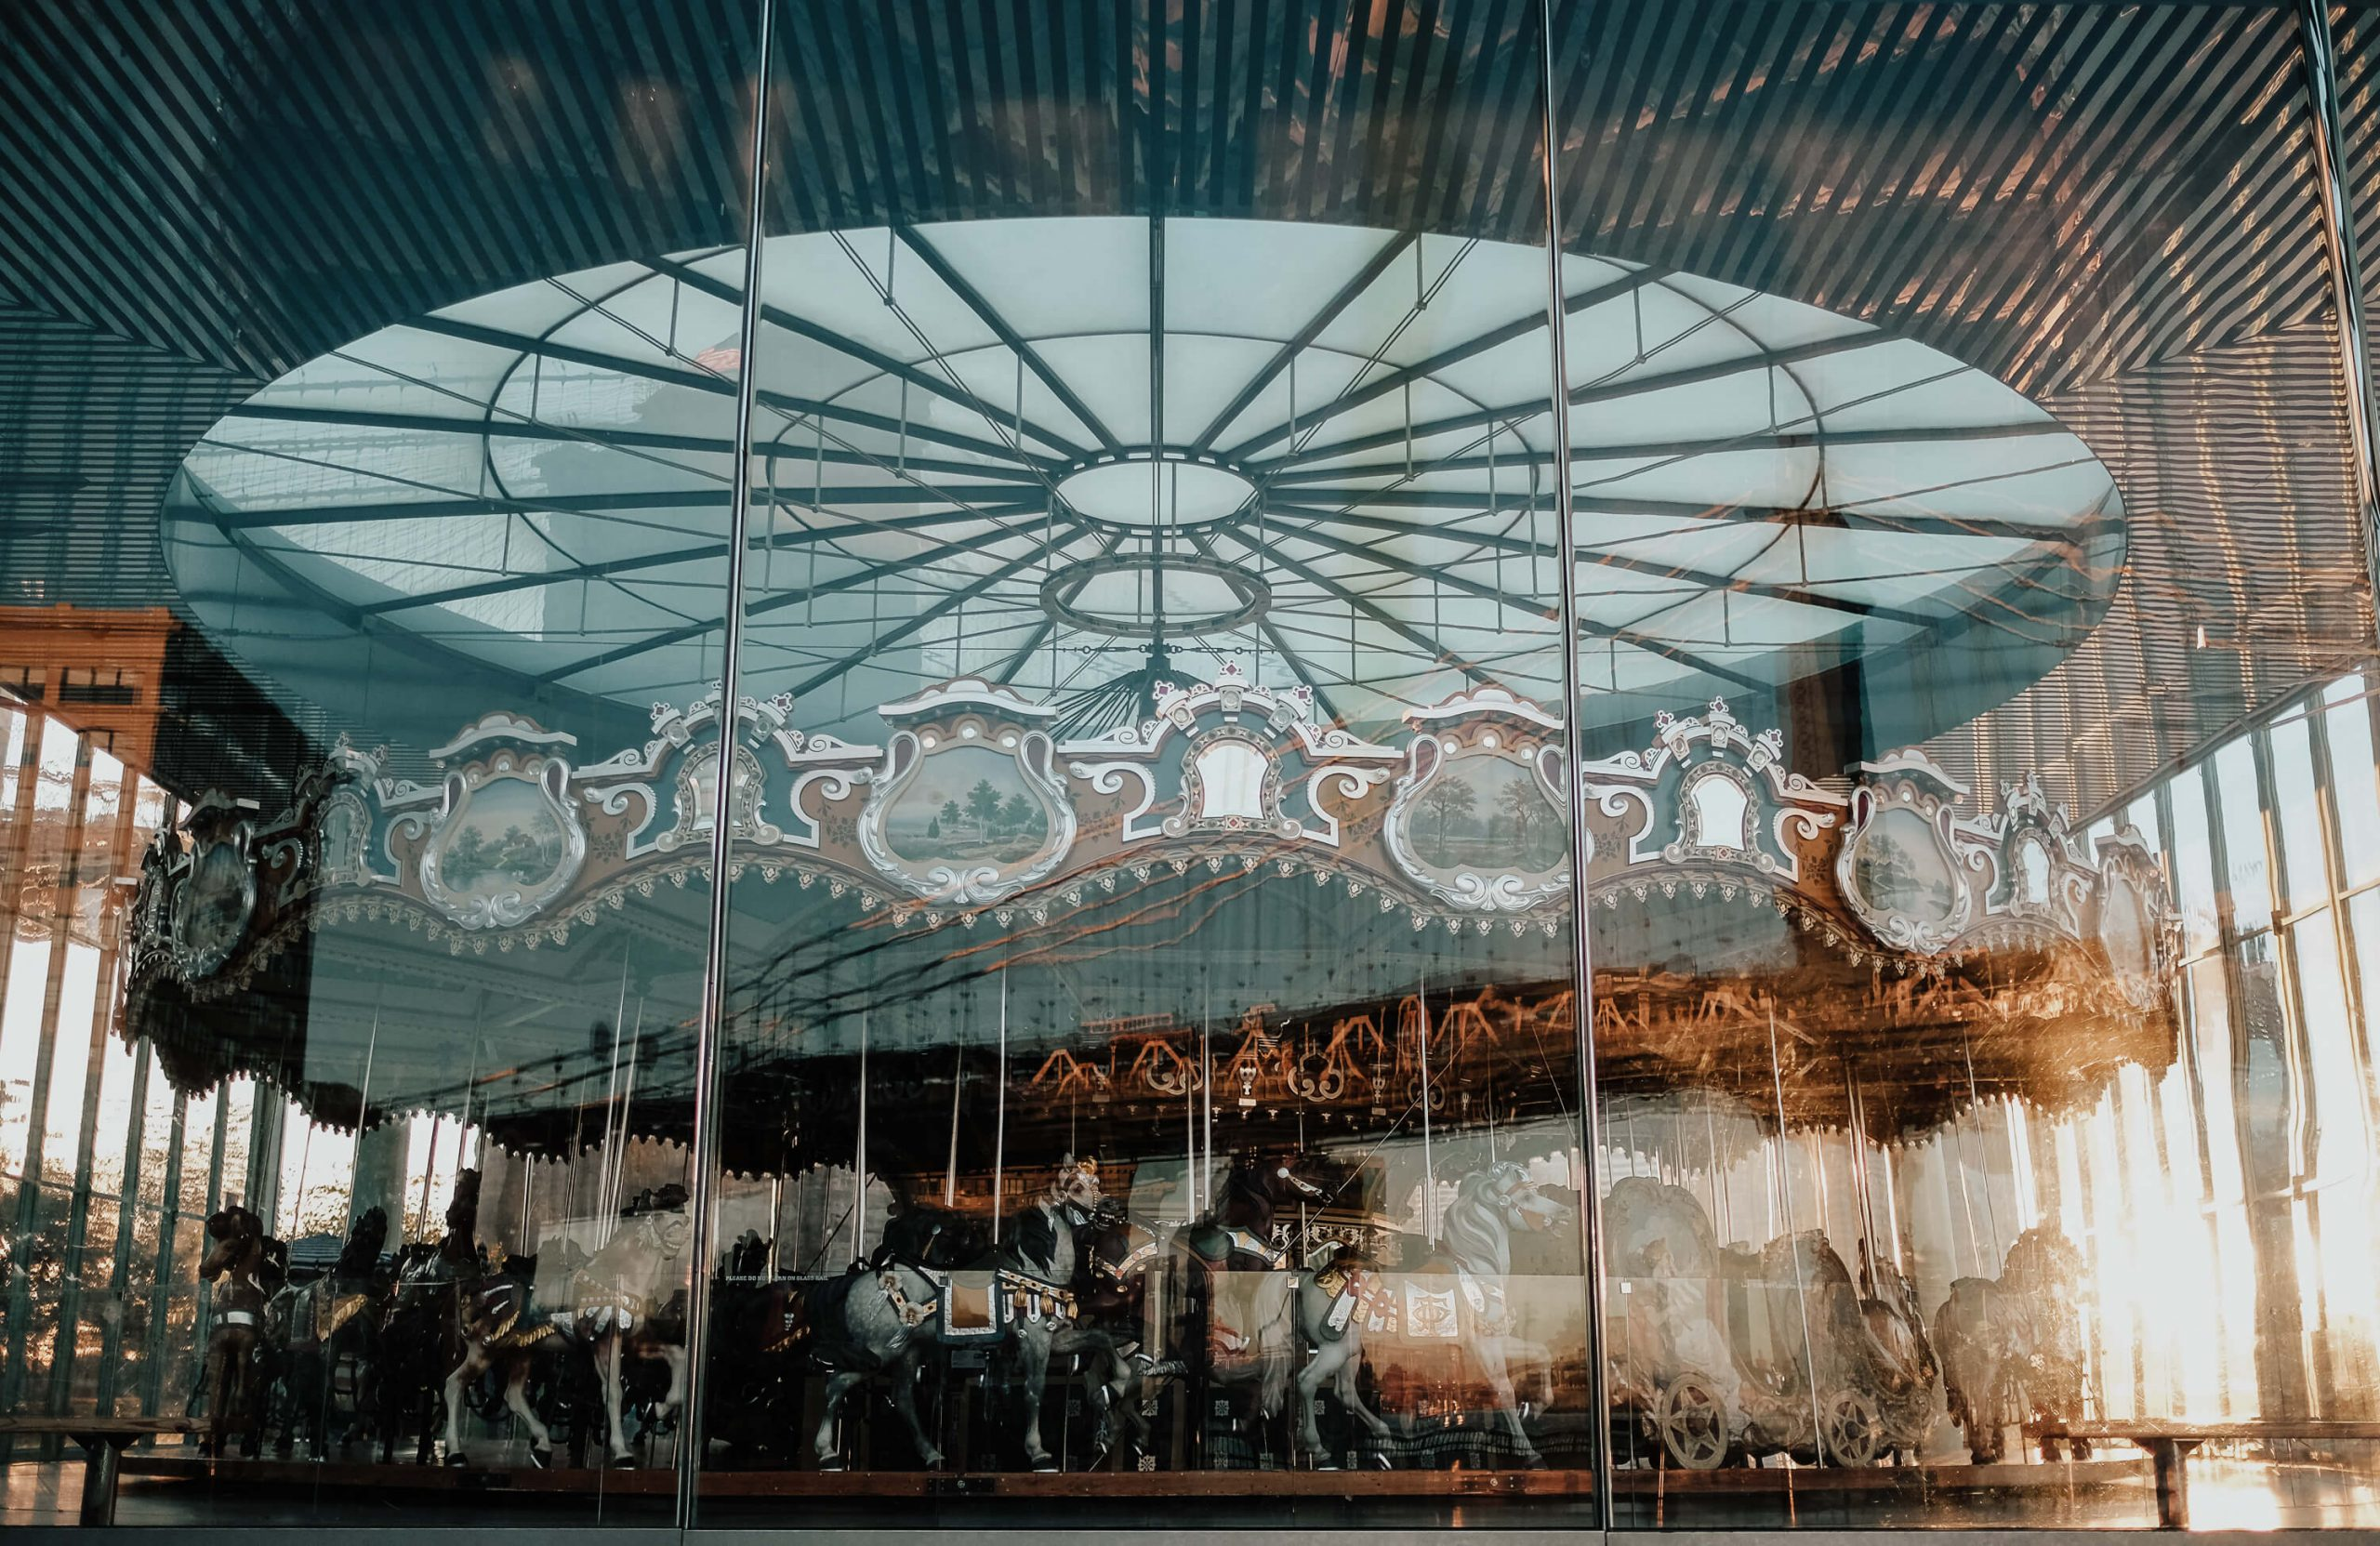 elisabetta riccio - urban vision - detail of the carousel located in Dumbo in front of the broklyn bridge